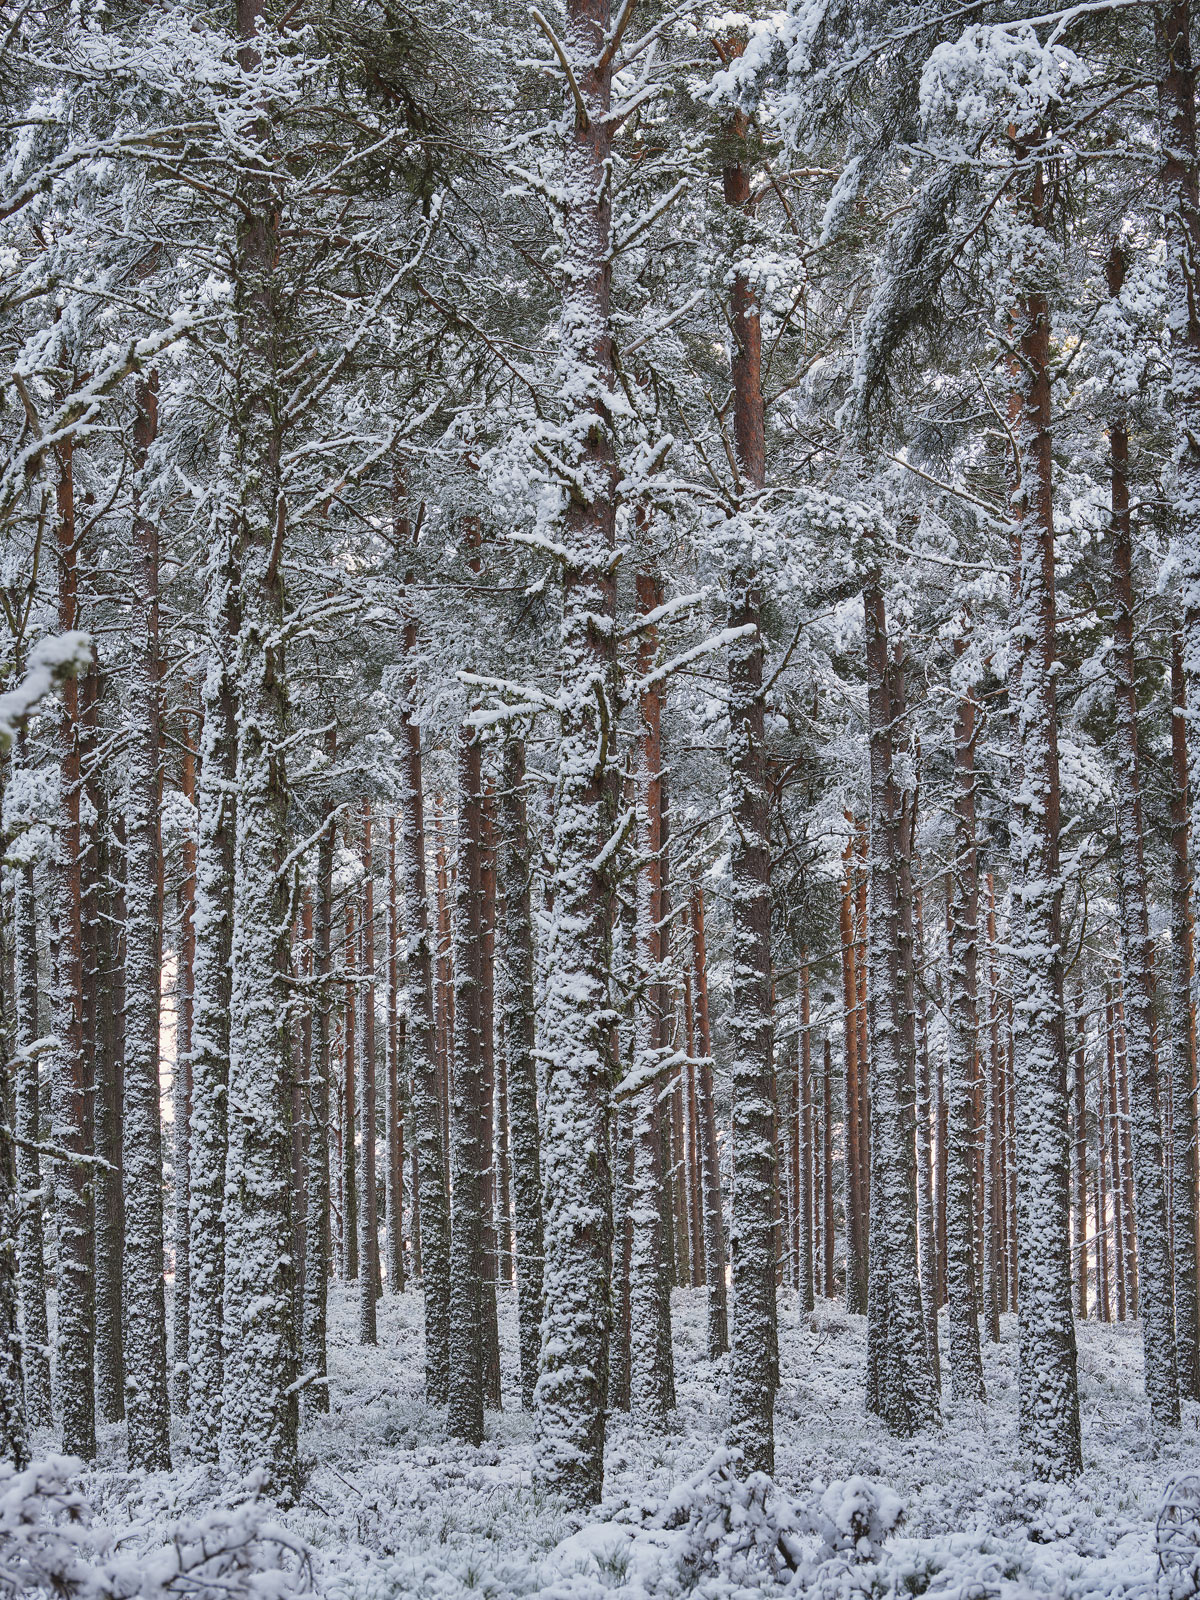 Regimented columns of pine trees are often boring and sterile but not so when they are spattered with fresh new snow and their...